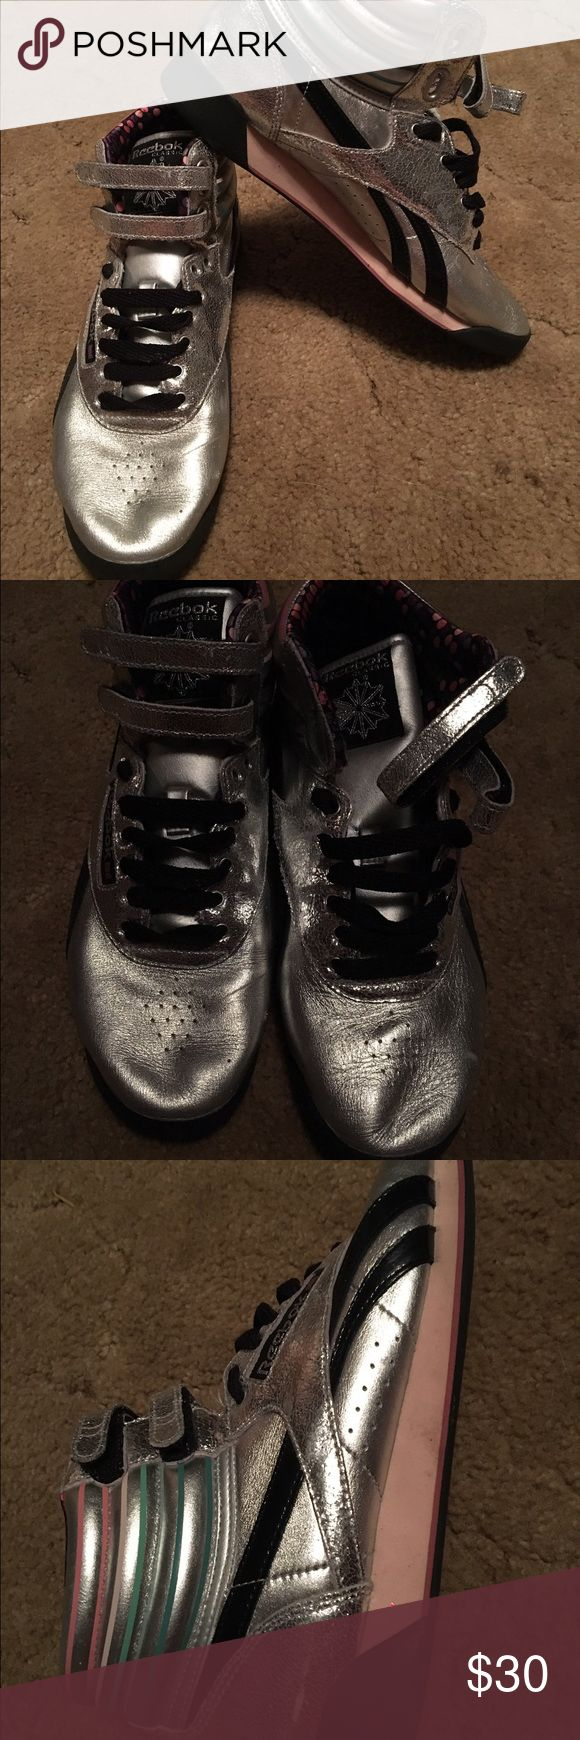 Metallic Silver High Top Reeboks Silver high top Reeboks- Velcro Straps. Worn a couple of times. New condition, but has some stains on the soles Reebok Shoes Sneakers